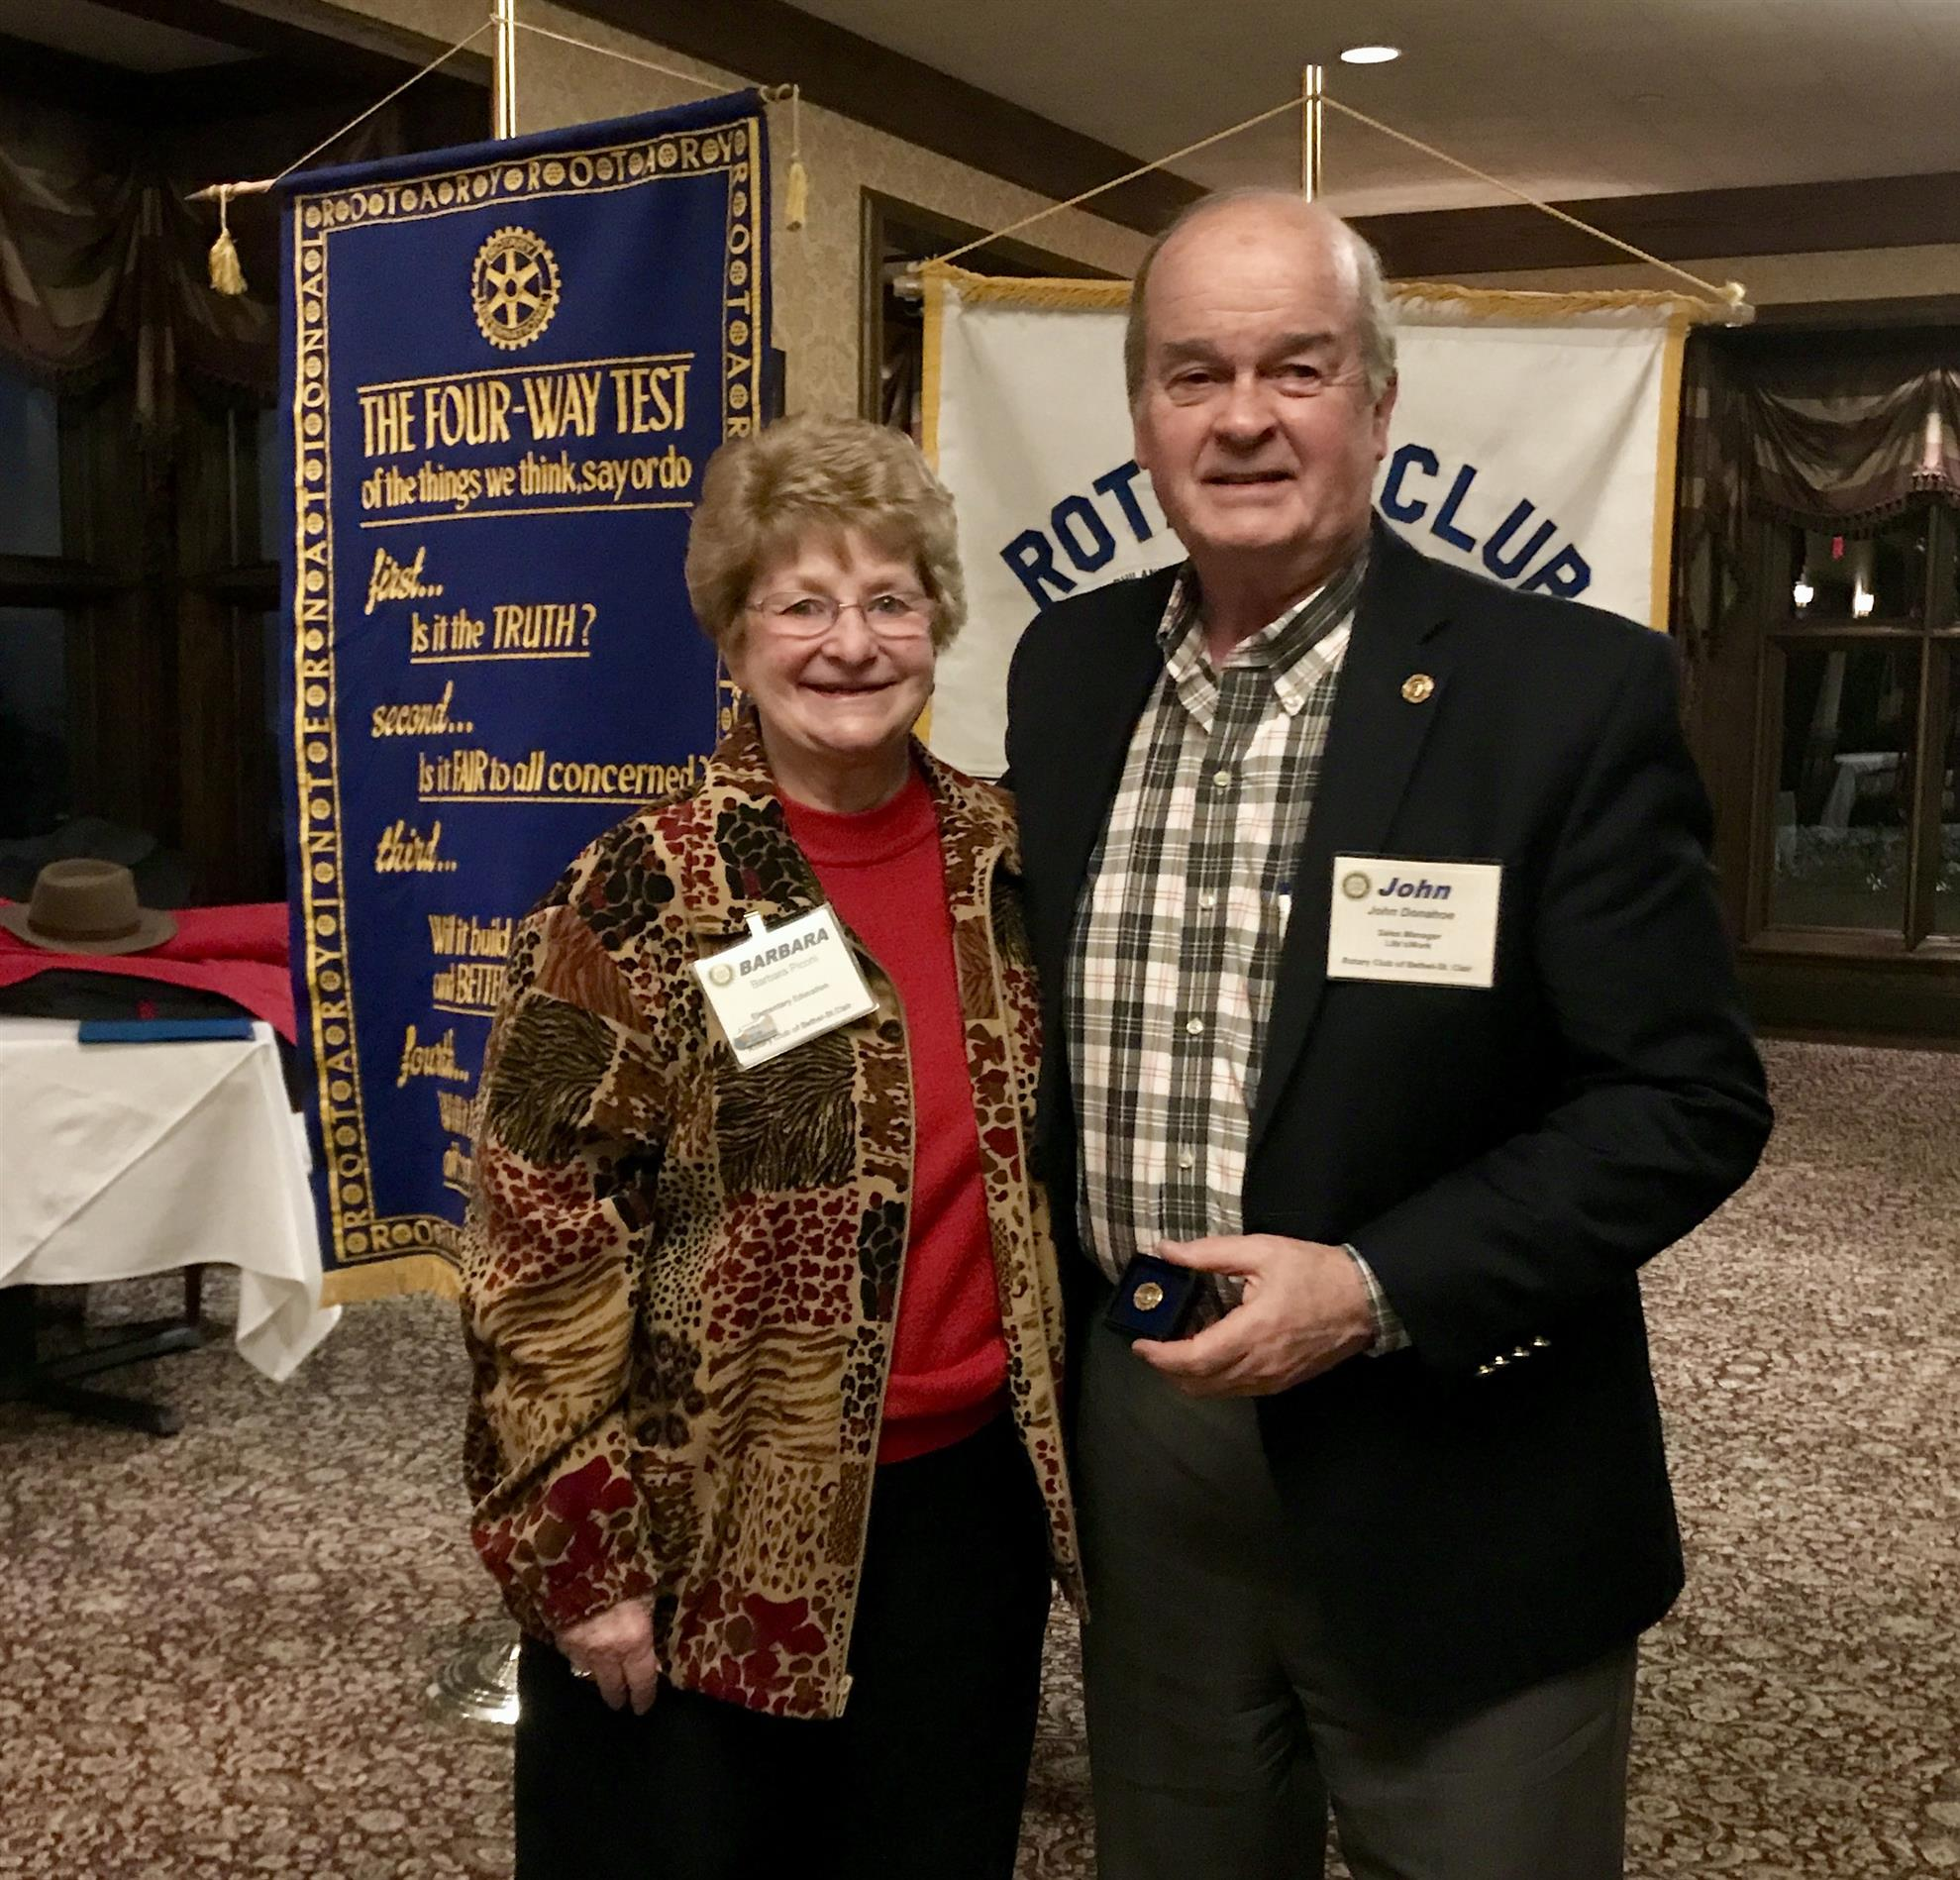 4ed306b677c7 Stories | Rotary Club of Bethel-St. Clair